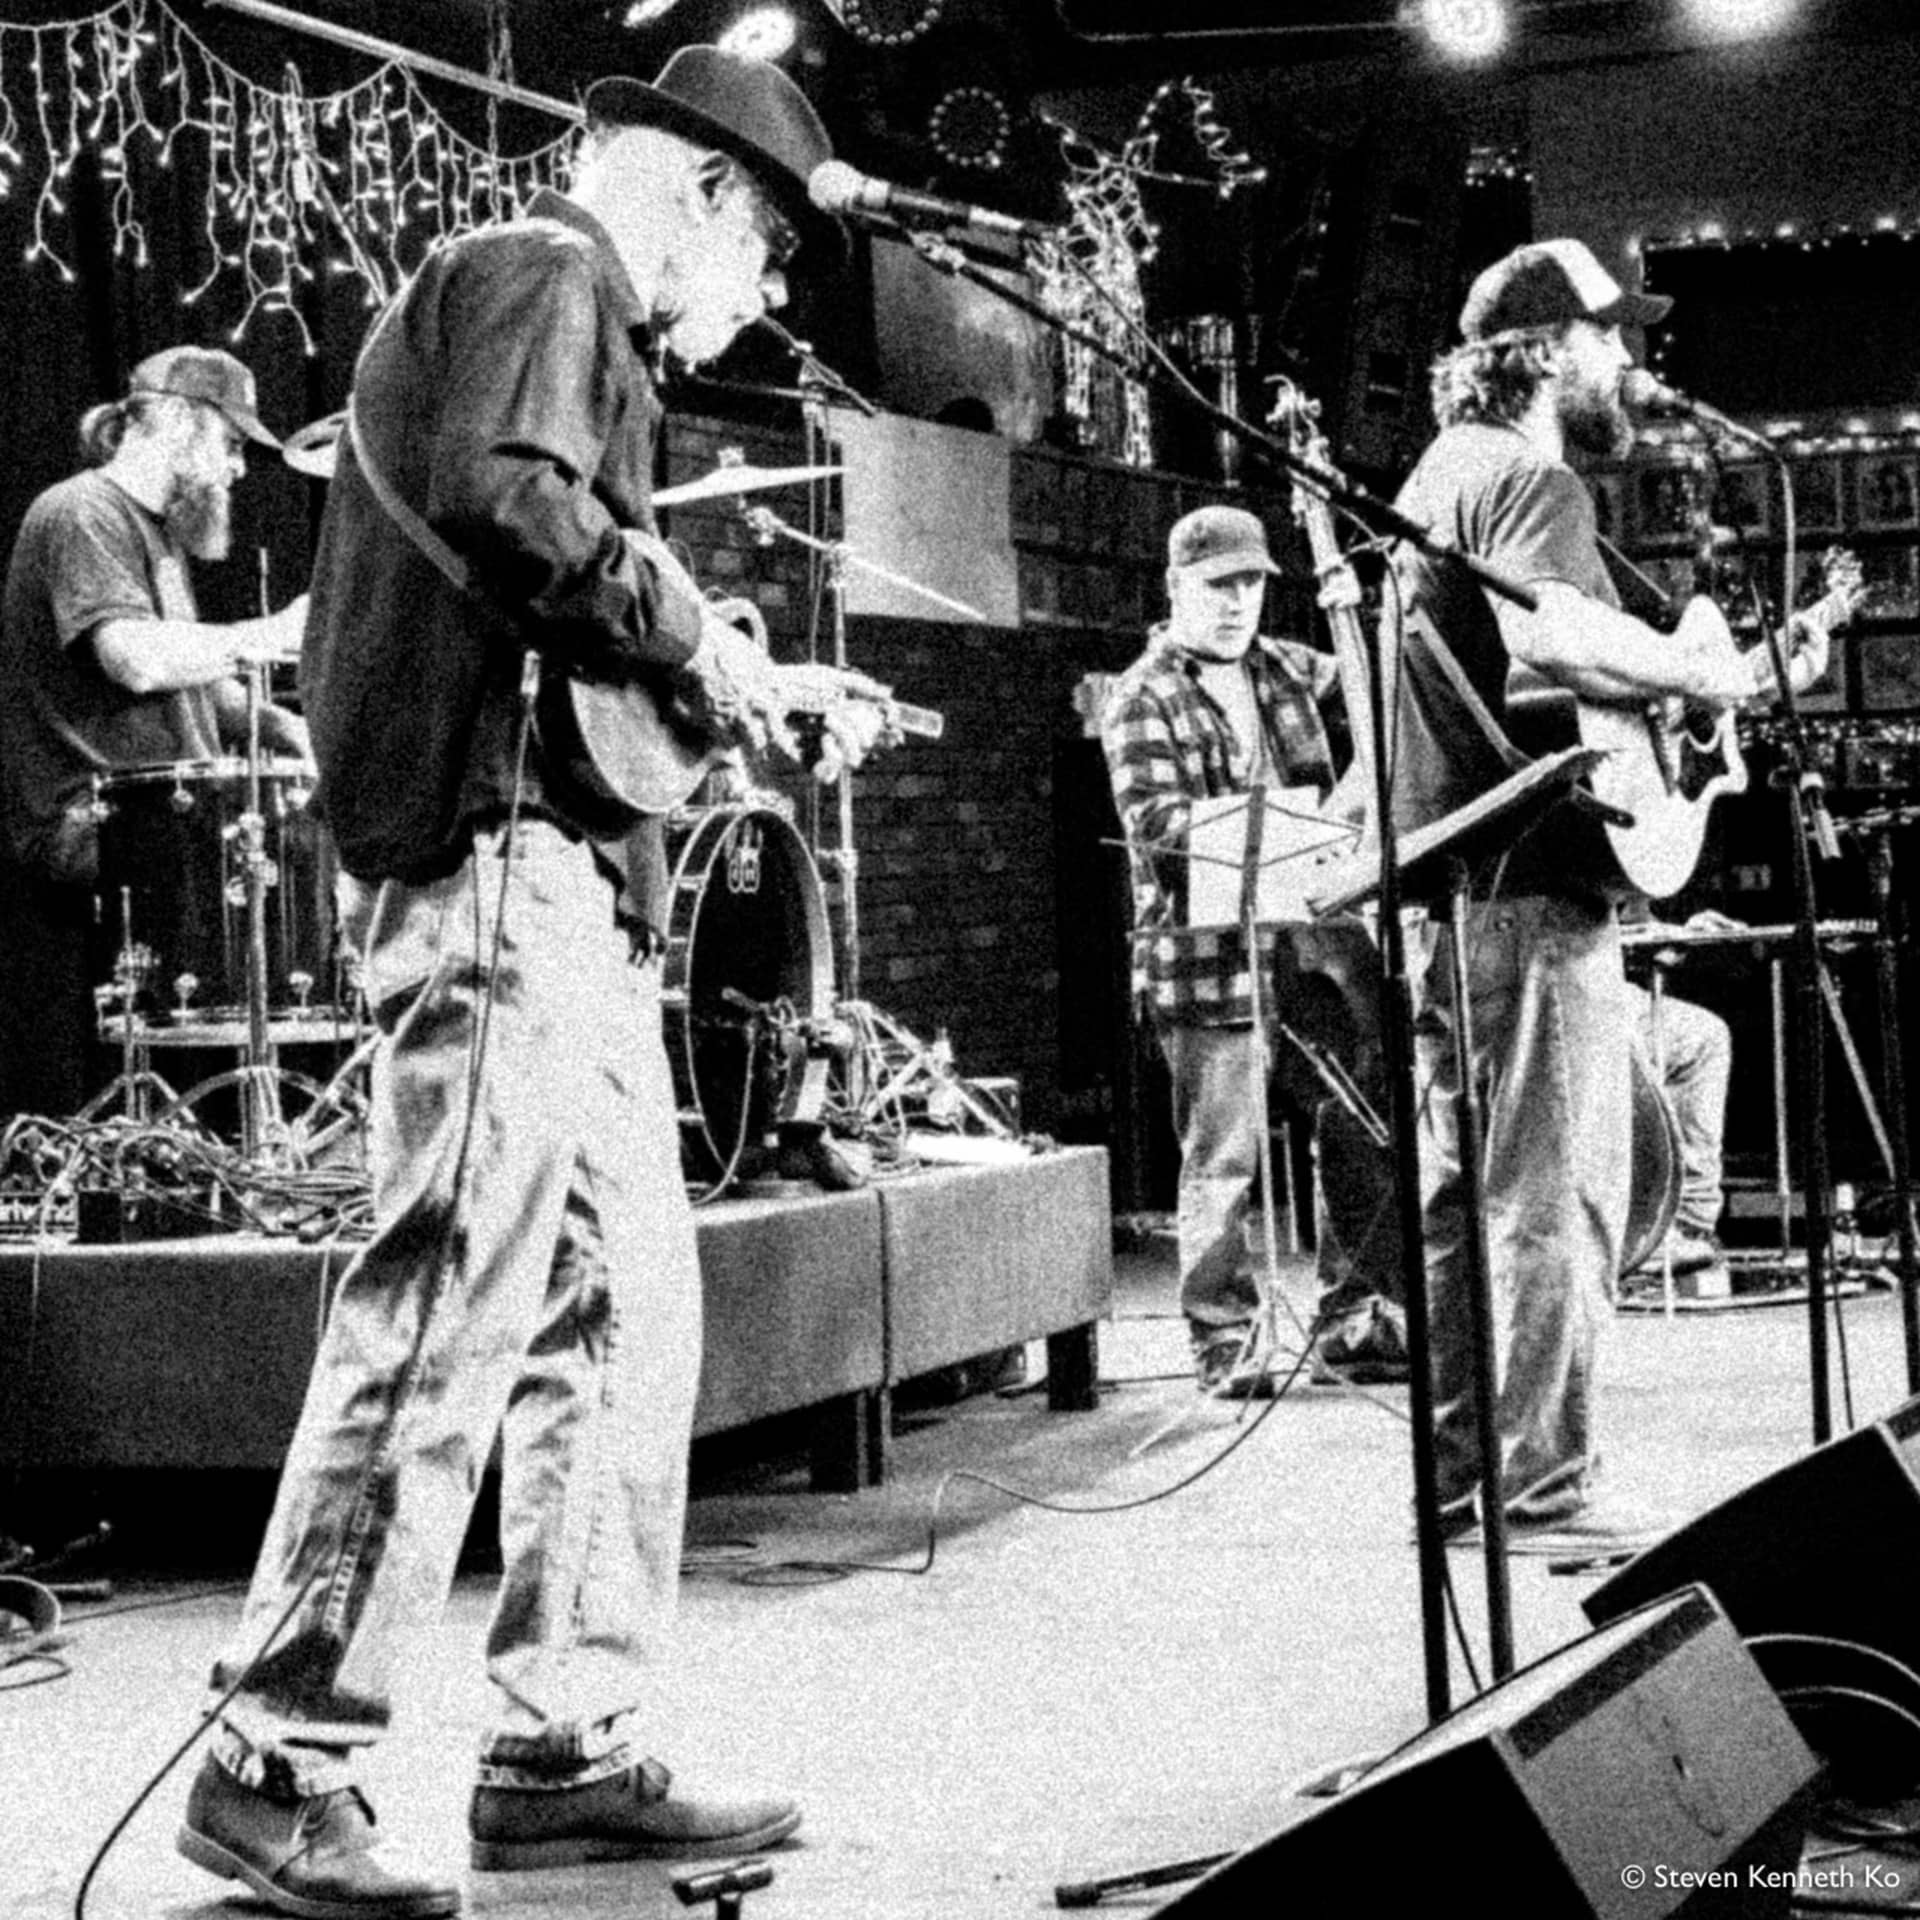 JANUARY 20 / JJ SMITH & THE HELM @ 2PM